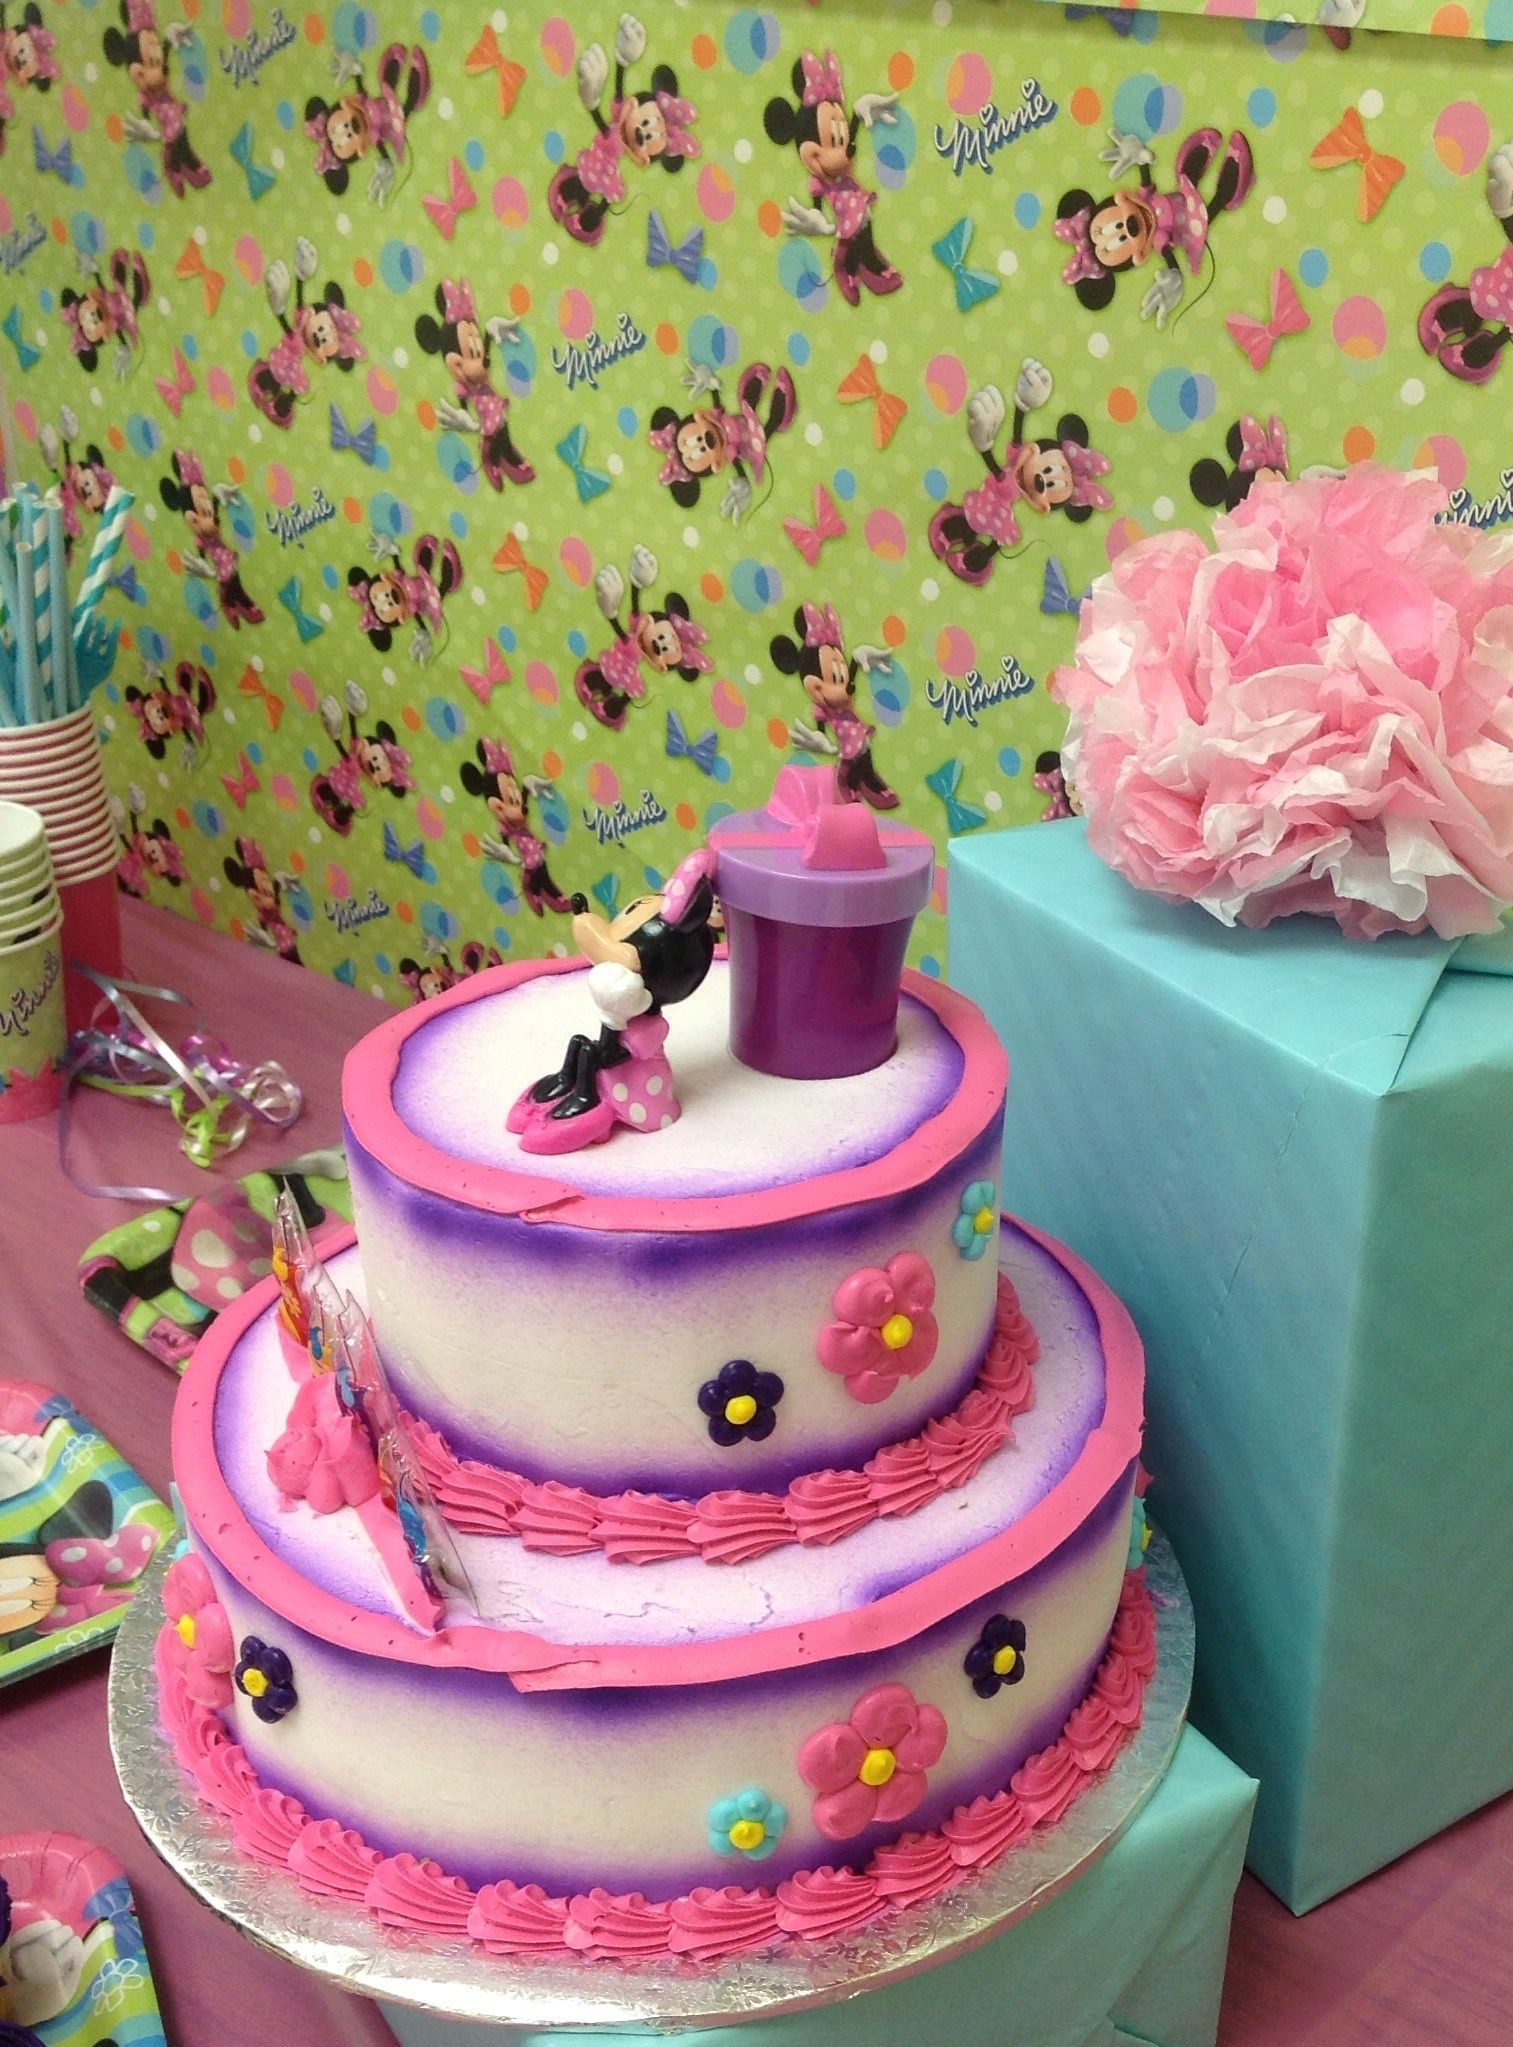 Breons 2 Tier Cake Made At Walmart Breons 1st Birthday Party